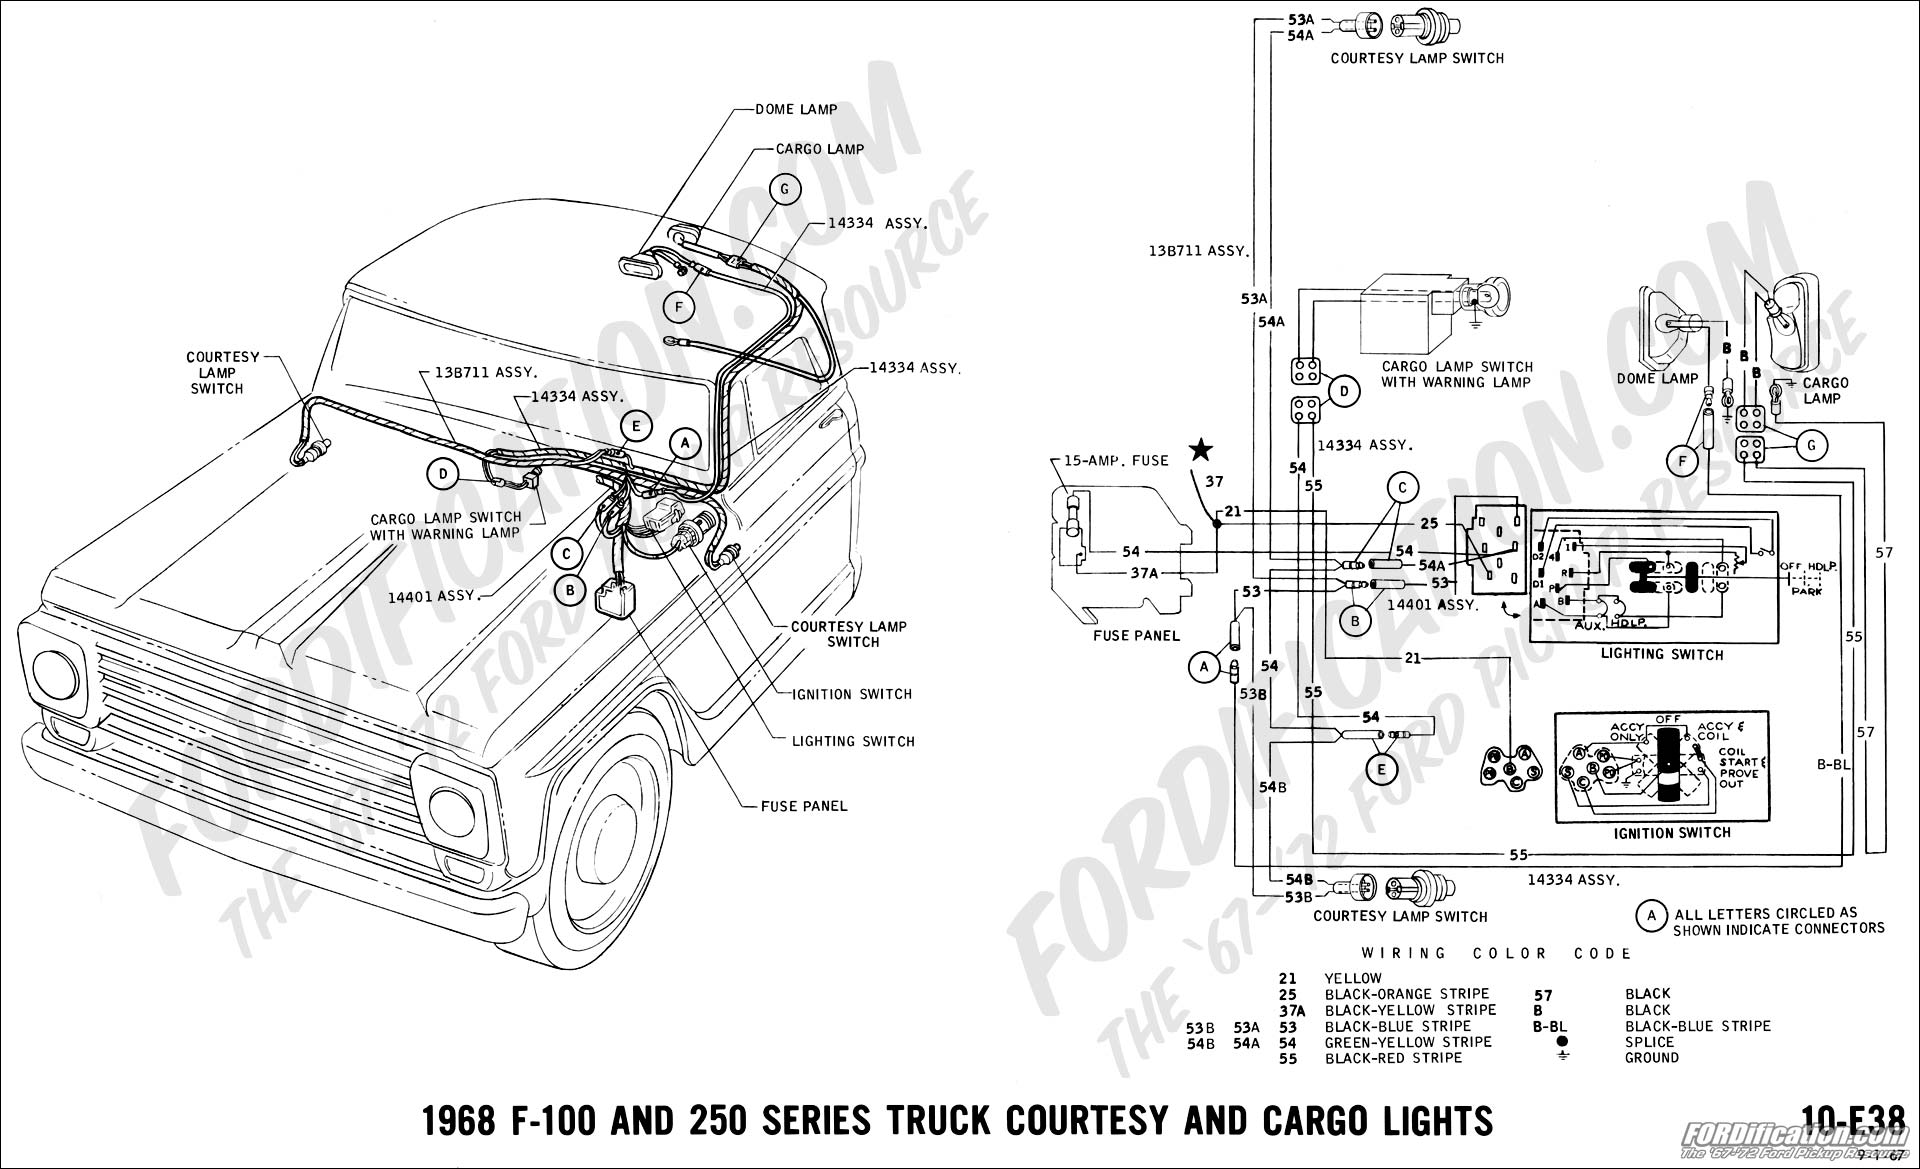 1968 f100 wiring harness wiring block diagram 1966 Ford F100 1968 ford f100 wiring diagram pdf schematic diagram t bucket wiring harness 1968 f100 wiring harness